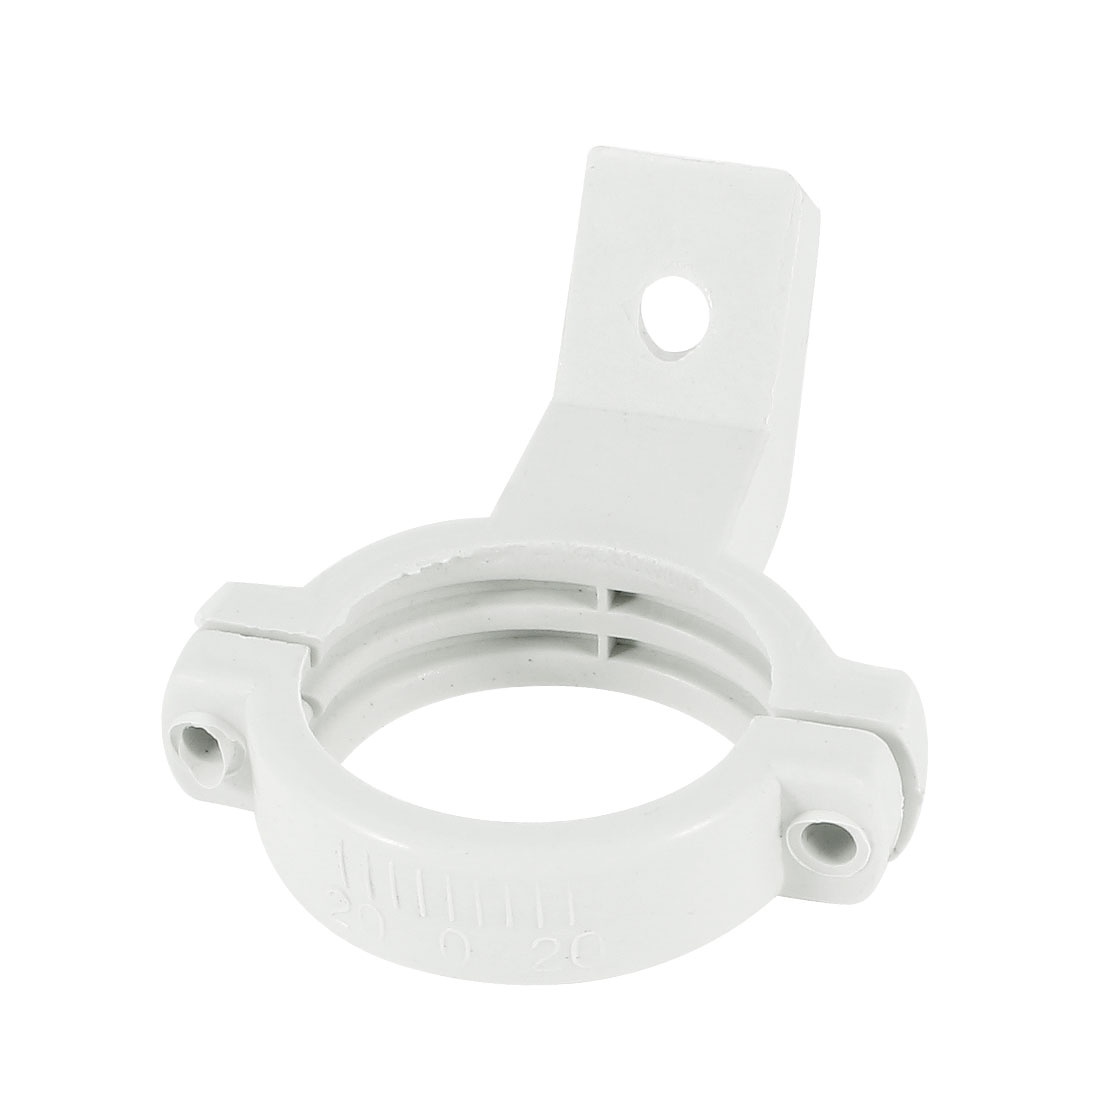 35-40mm Plastic Single Dish Bracket Holder Mount White for Ku Band